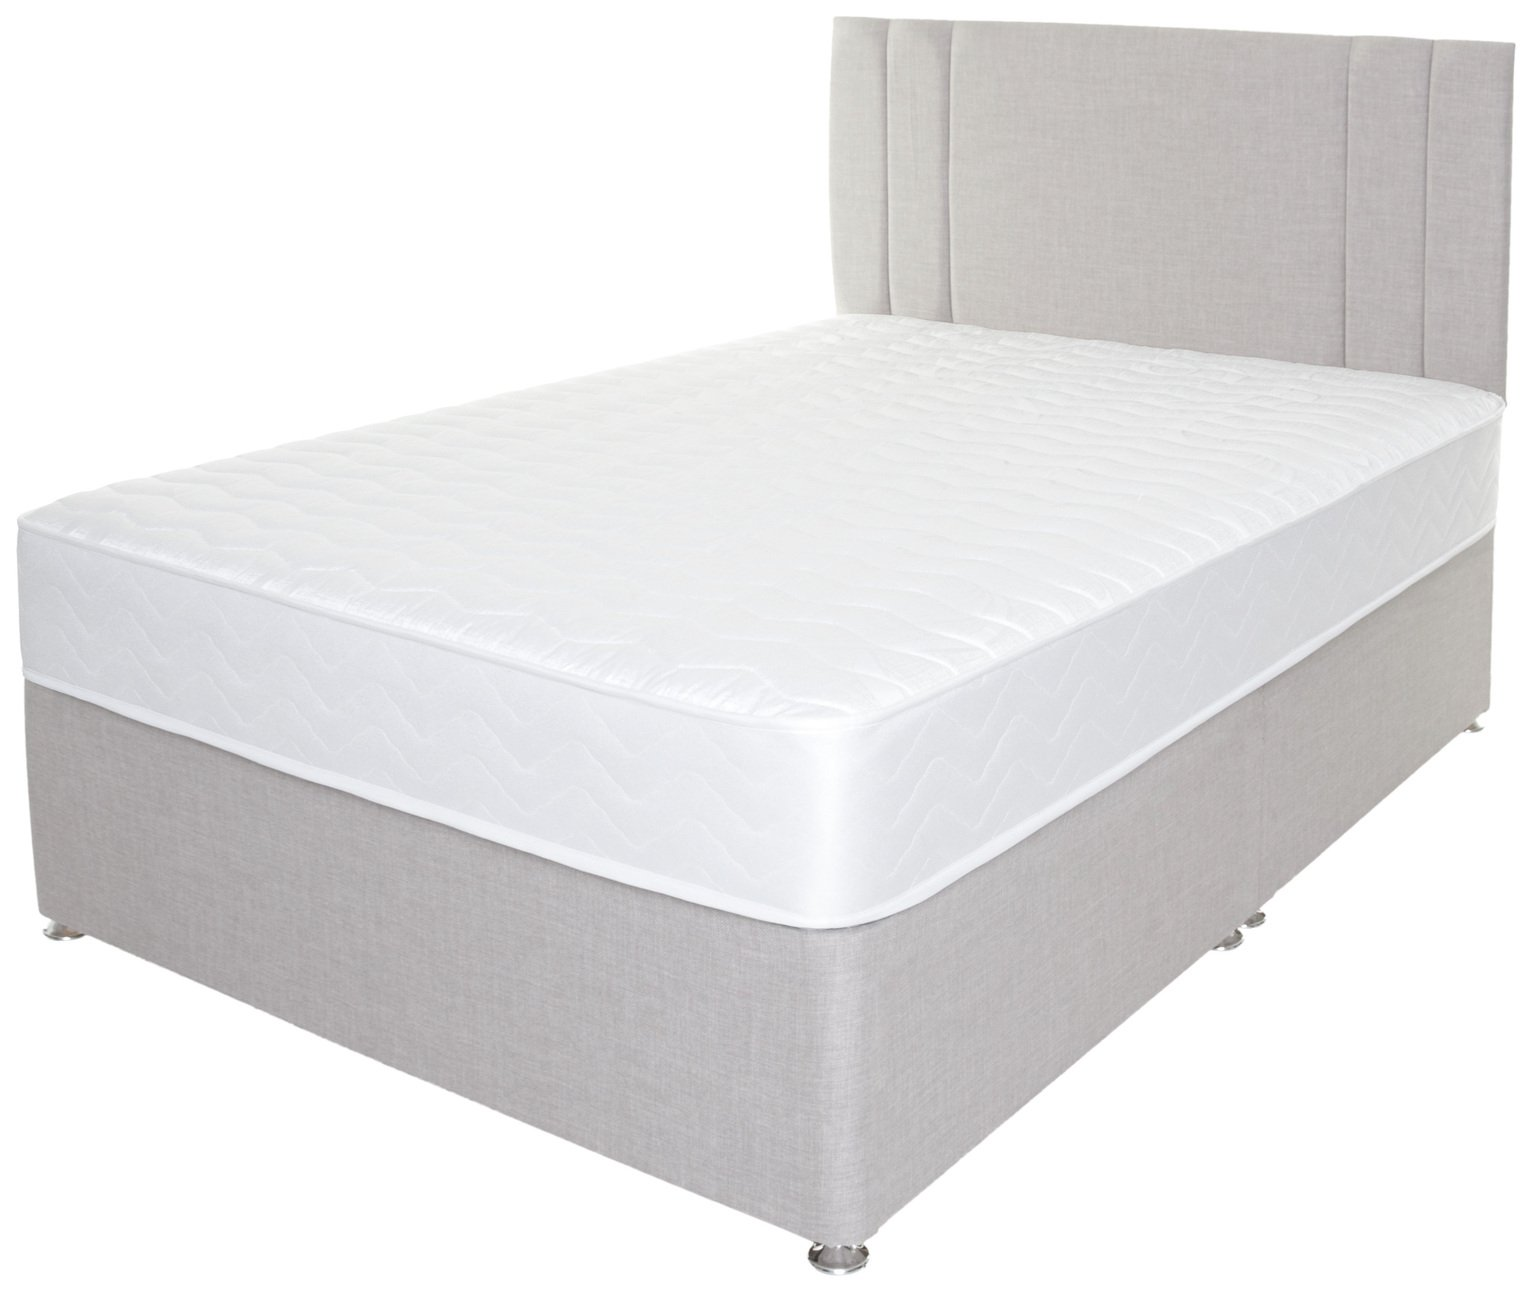 Airsprung Henlow 1200 Pocket Memory Divan Set - Double